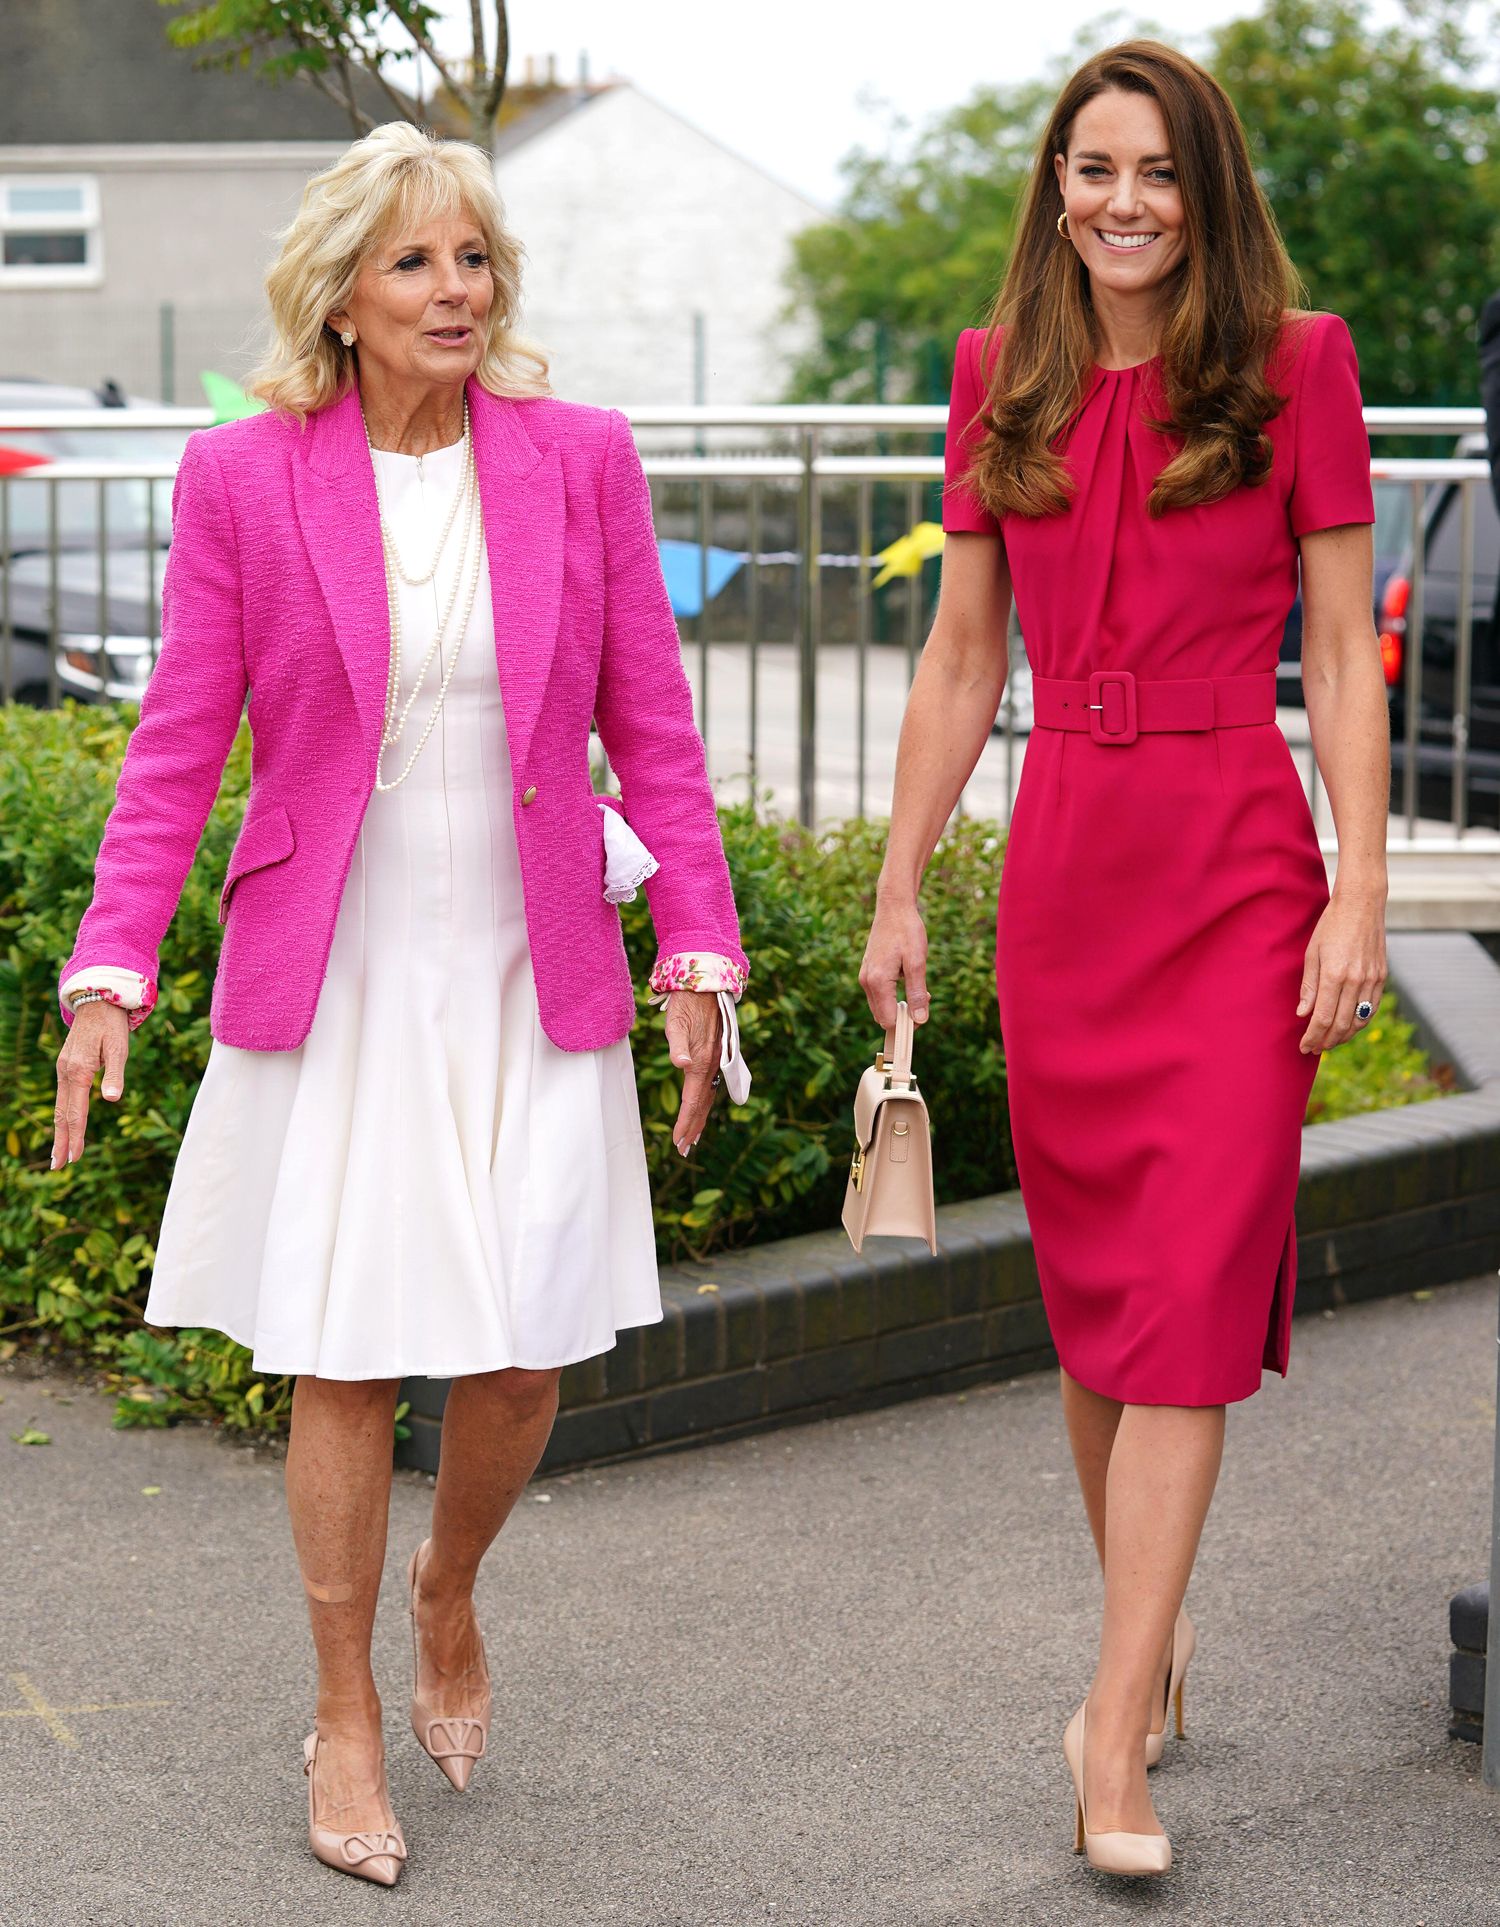 The Duchess of Cambridge (right) and US First Lady Jill Biden during a visit to Connor Downs Academy in Hayle, West Cornwall, during the G7 summit in Cornwall. Picture date: Friday June 11, 2021.